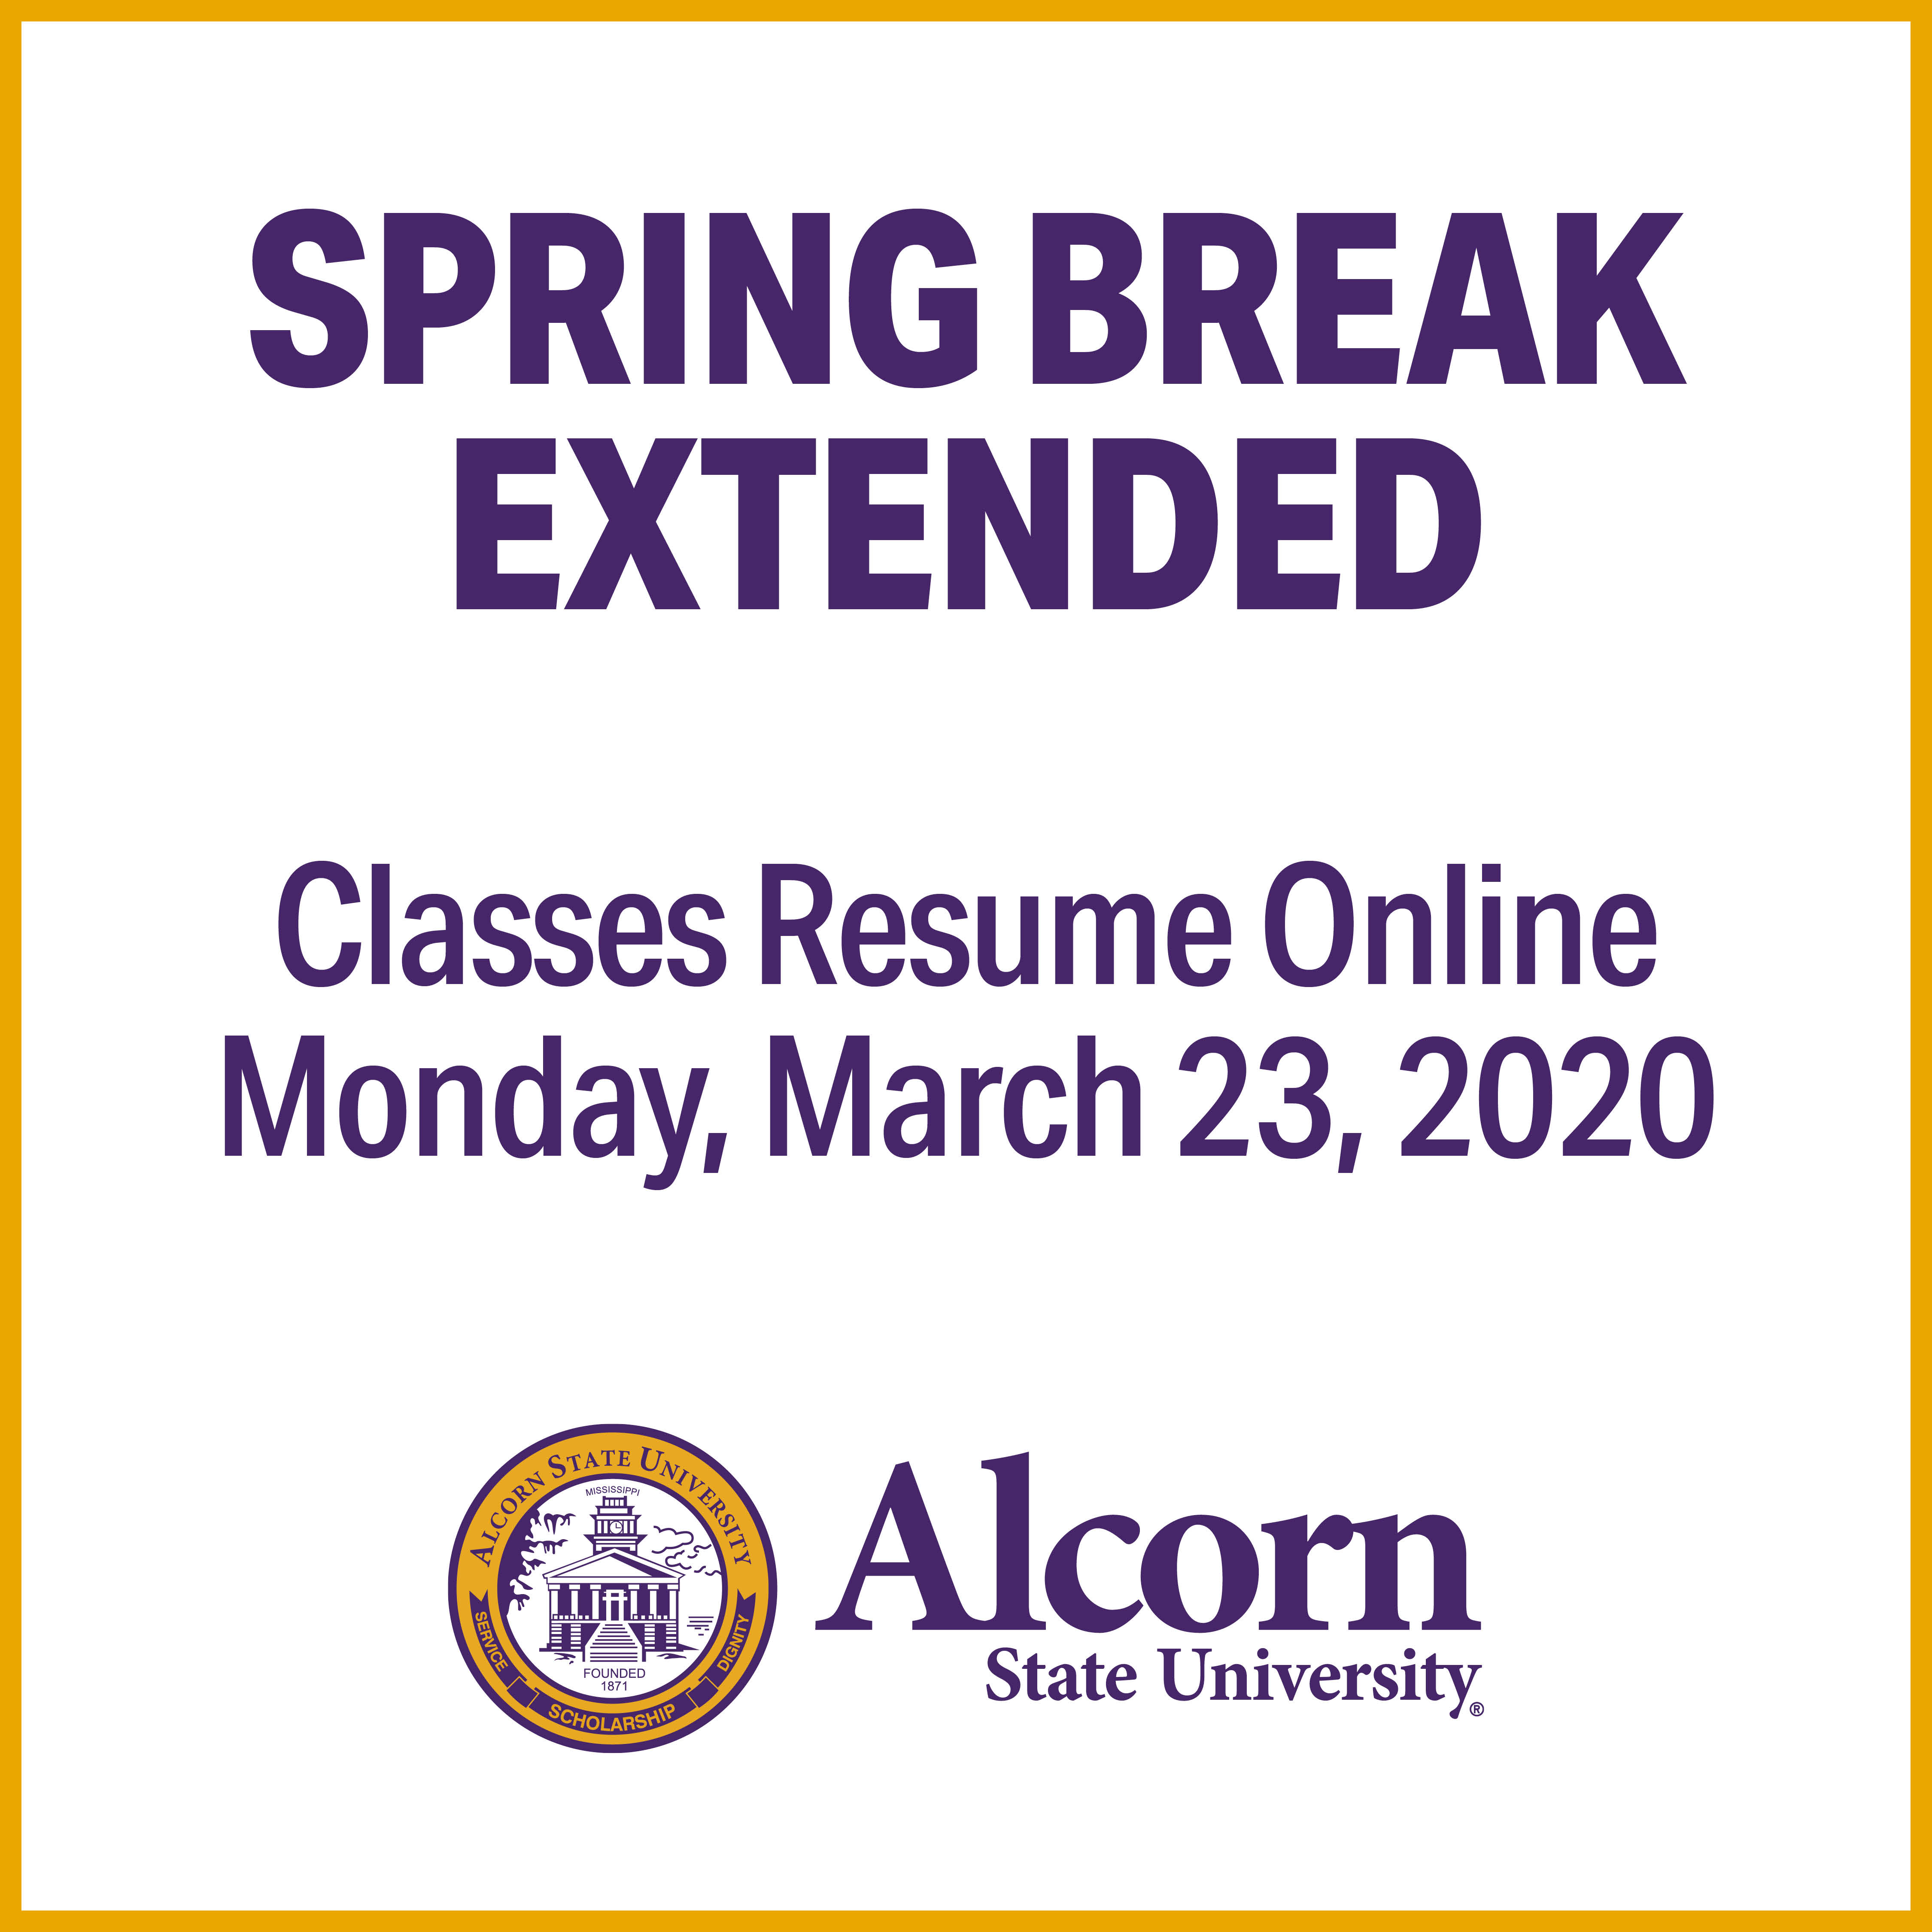 Interim Provost and Executive Vice President for Academic Affairs Statement Regarding Spring Break Extension and Transition to Virtual Instruction